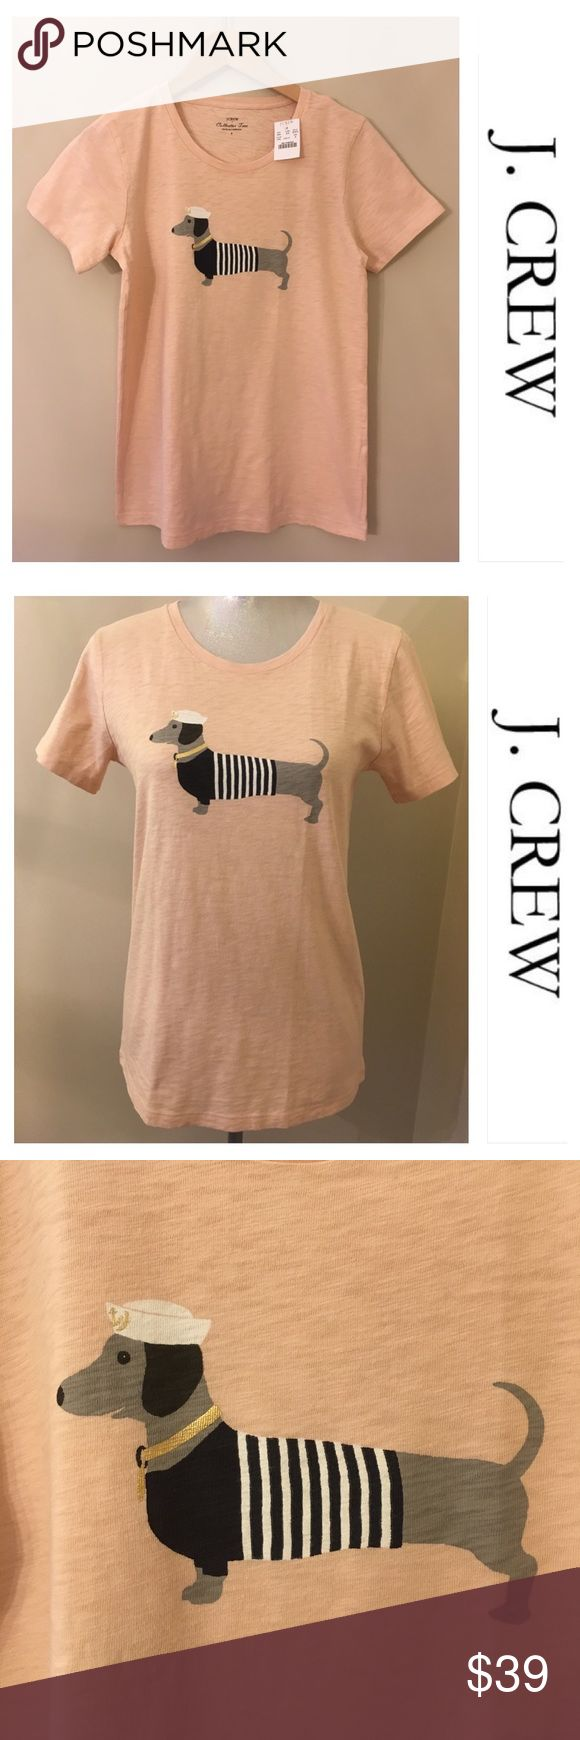 "J. Crew Collector T-Shirt Yeah Dachshund Peach NWT NWT. Brand new never opened package until I took this picture. J. Crew Collector Tee. Color Creamy Peach. In my option is a peach or a nude kind of color. Size Small. Shown on my size 6 mannequin.  Underarm to underarm 18.25"" inches. Sleeve length 7"" inches. From back of neck to hem 24"" inches.  PRODUCT DETAILS Cotton slub jersey. Slightly loose fit. Import. Item G7275. FINAL PRICE. Bundle for additional discounts. J. Crew Tops Tees - Short…"